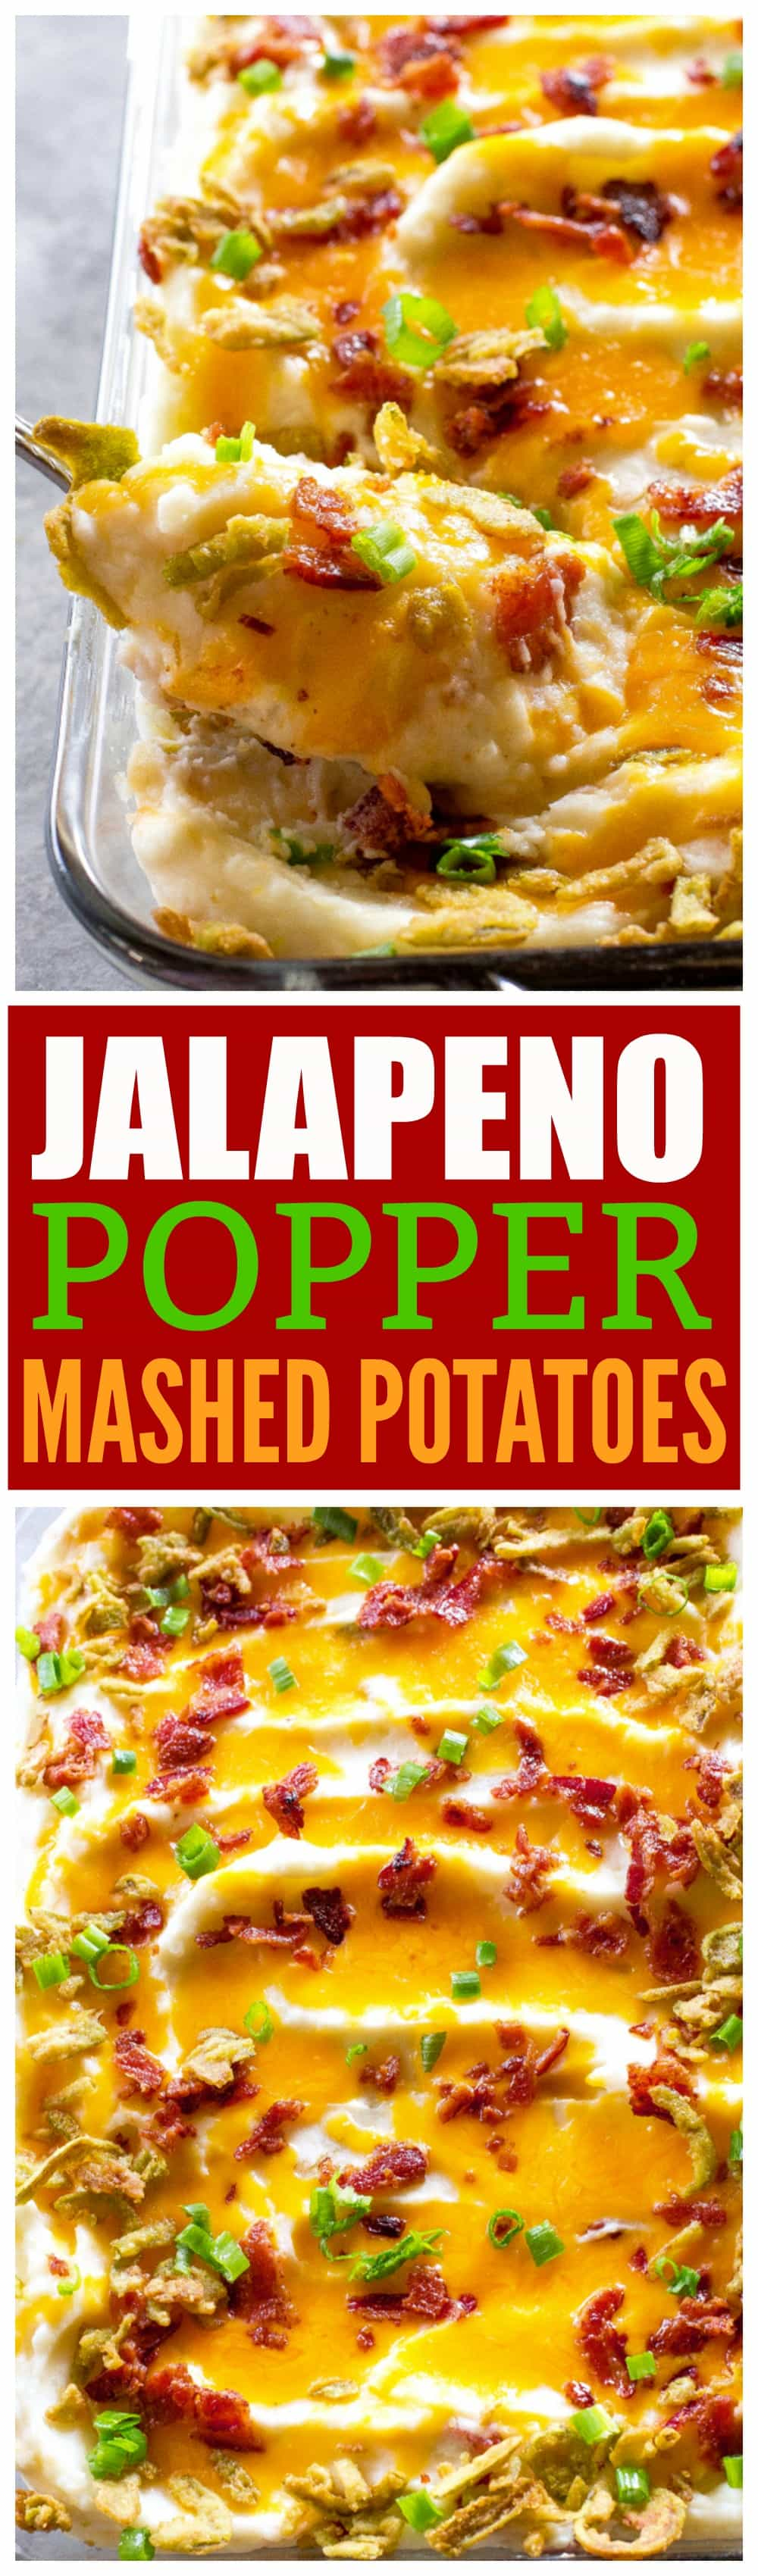 These Jalapeno Popper Mashed Potatoes are creamy mashed potatoes loaded with cheese, bacon, and crispy jalapenos. #ad These will take your Thanksgiving (or Friendsgiving) to the next level. #thanksgiving #friendsgiving #jalapenopopper #mashed #potatoes width=